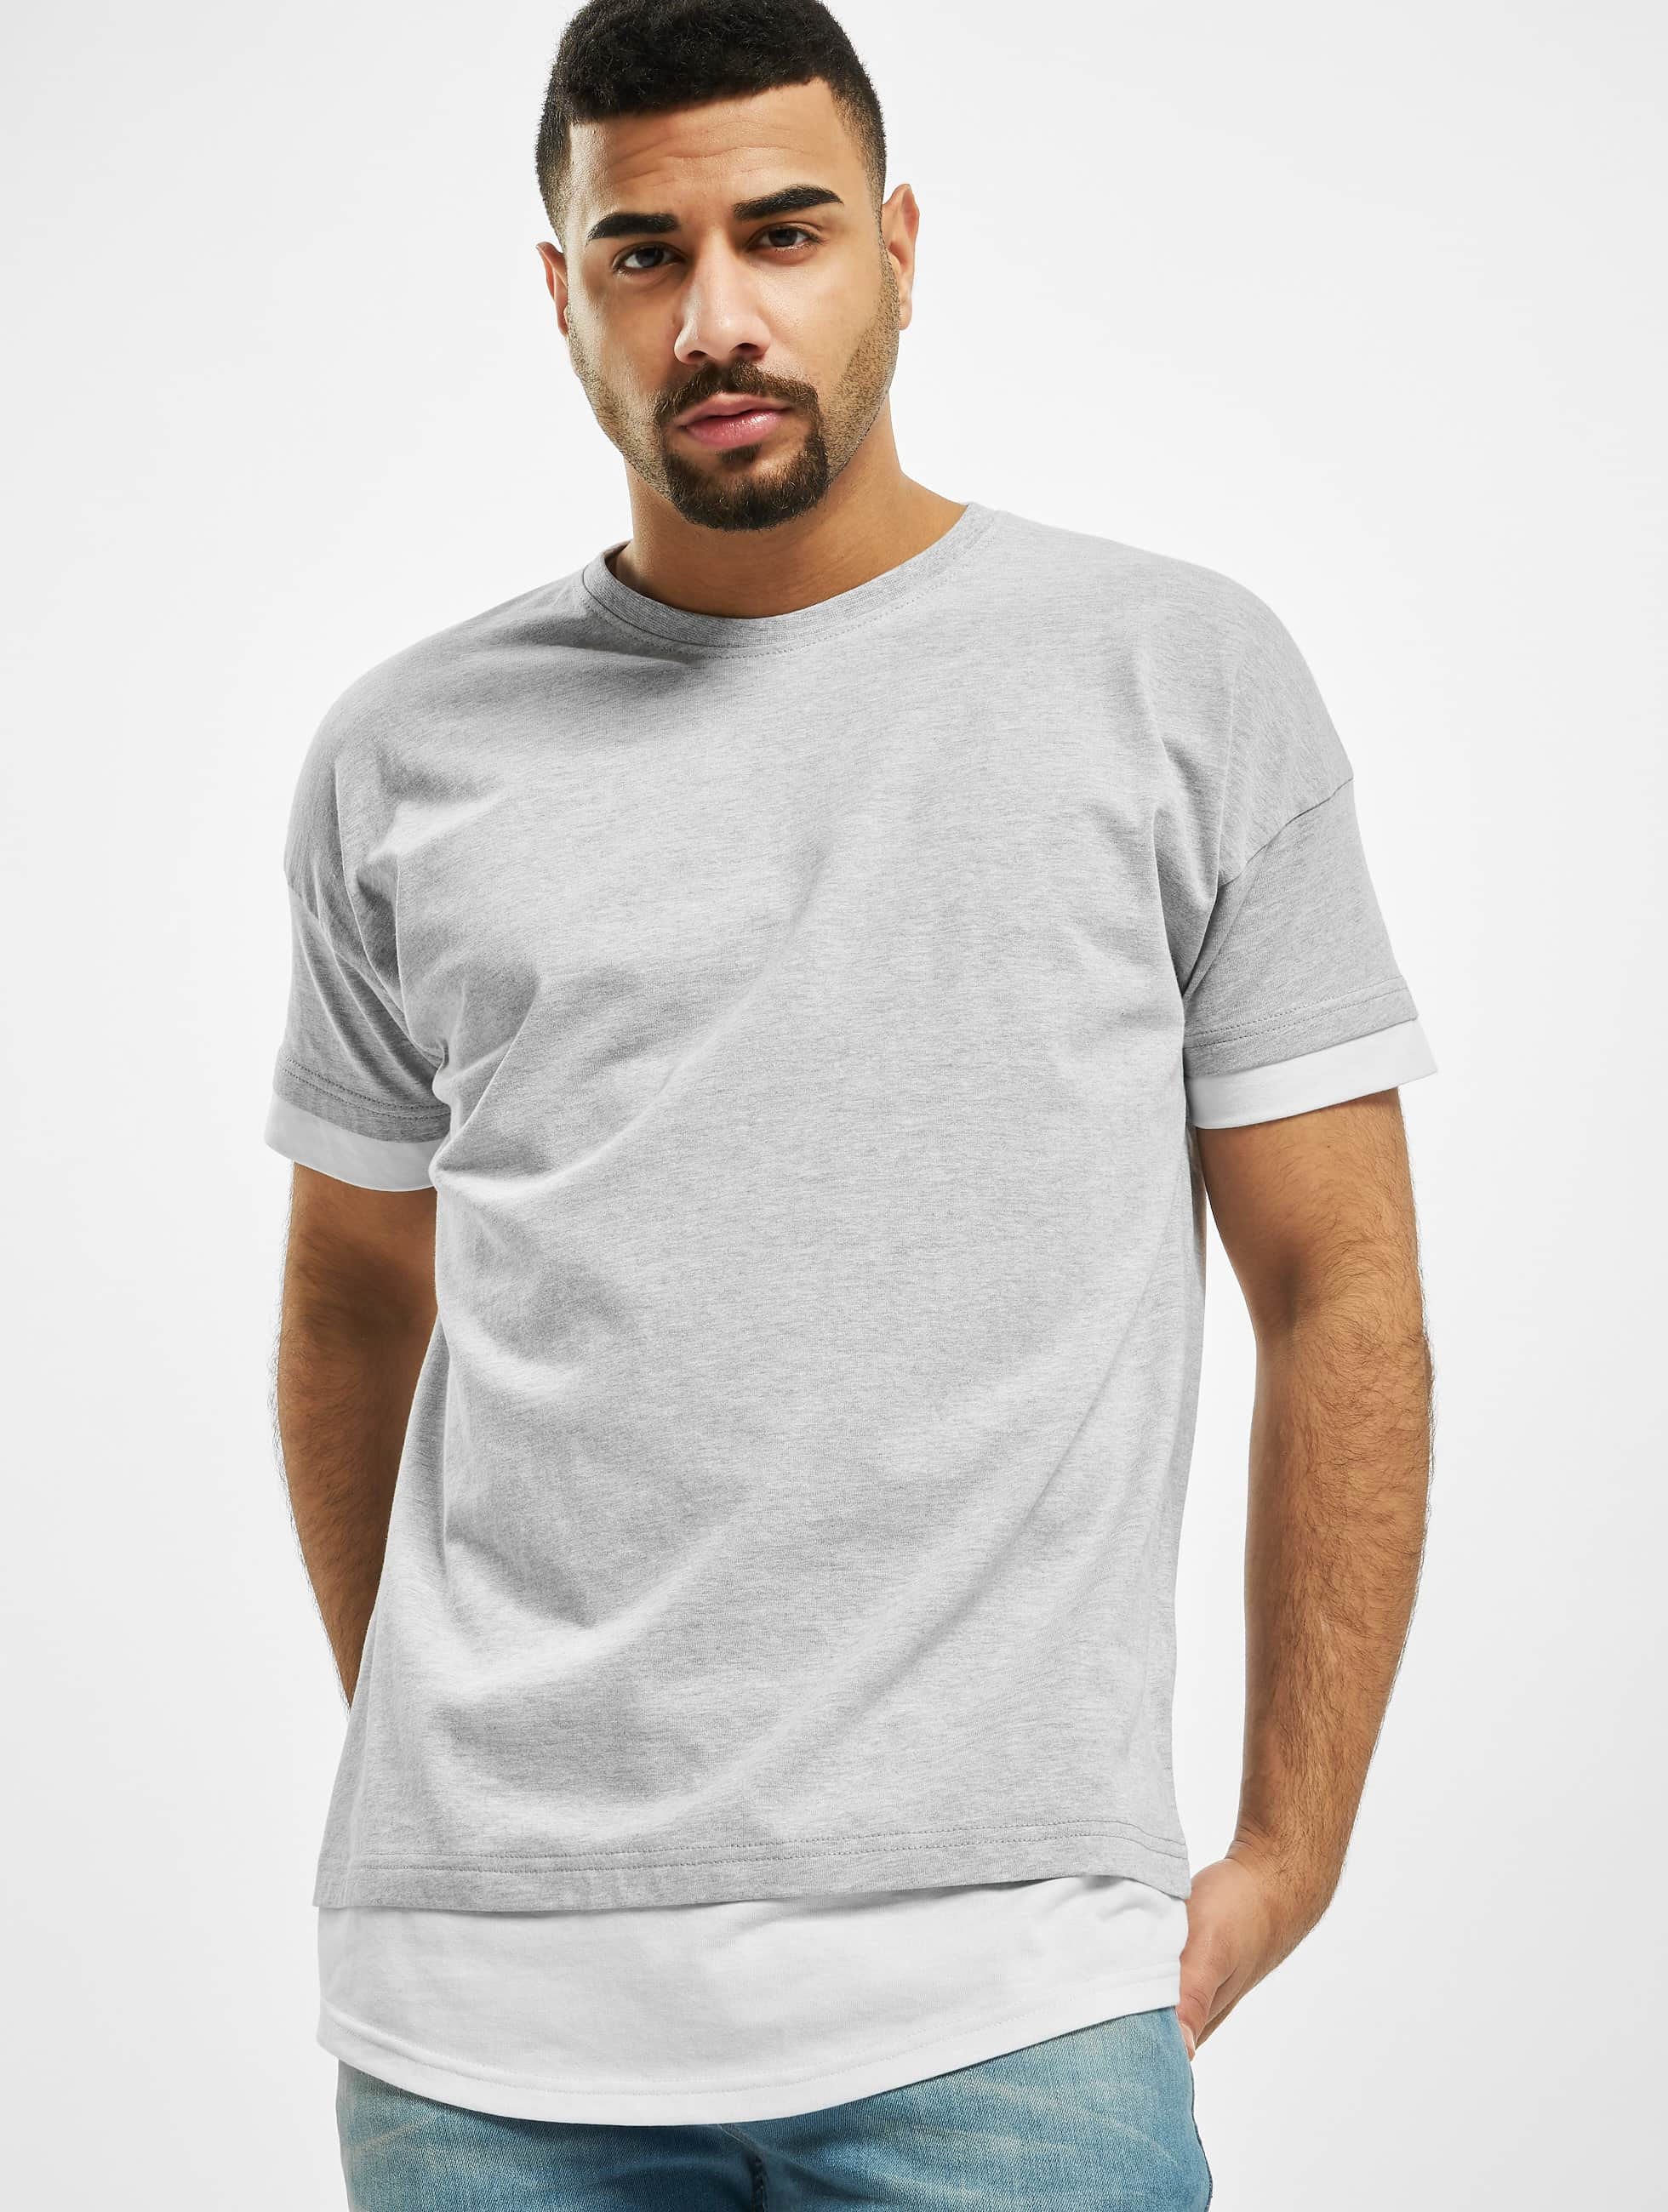 DEF / T-Shirt Tyle in grey XL